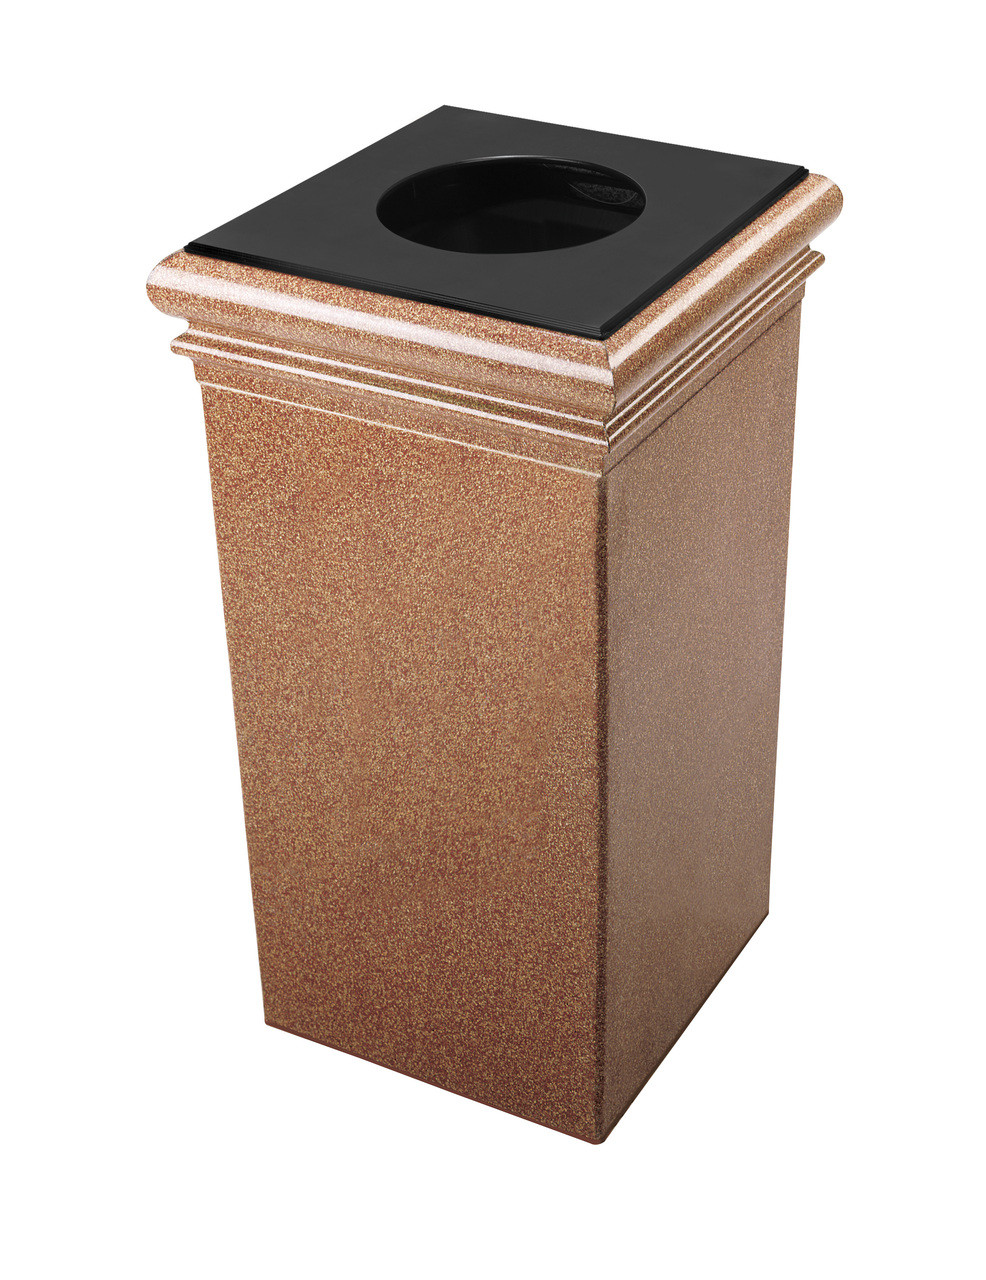 30 Gallon StoneTec Concrete Fiberglass Decorative Trash Can Sedona